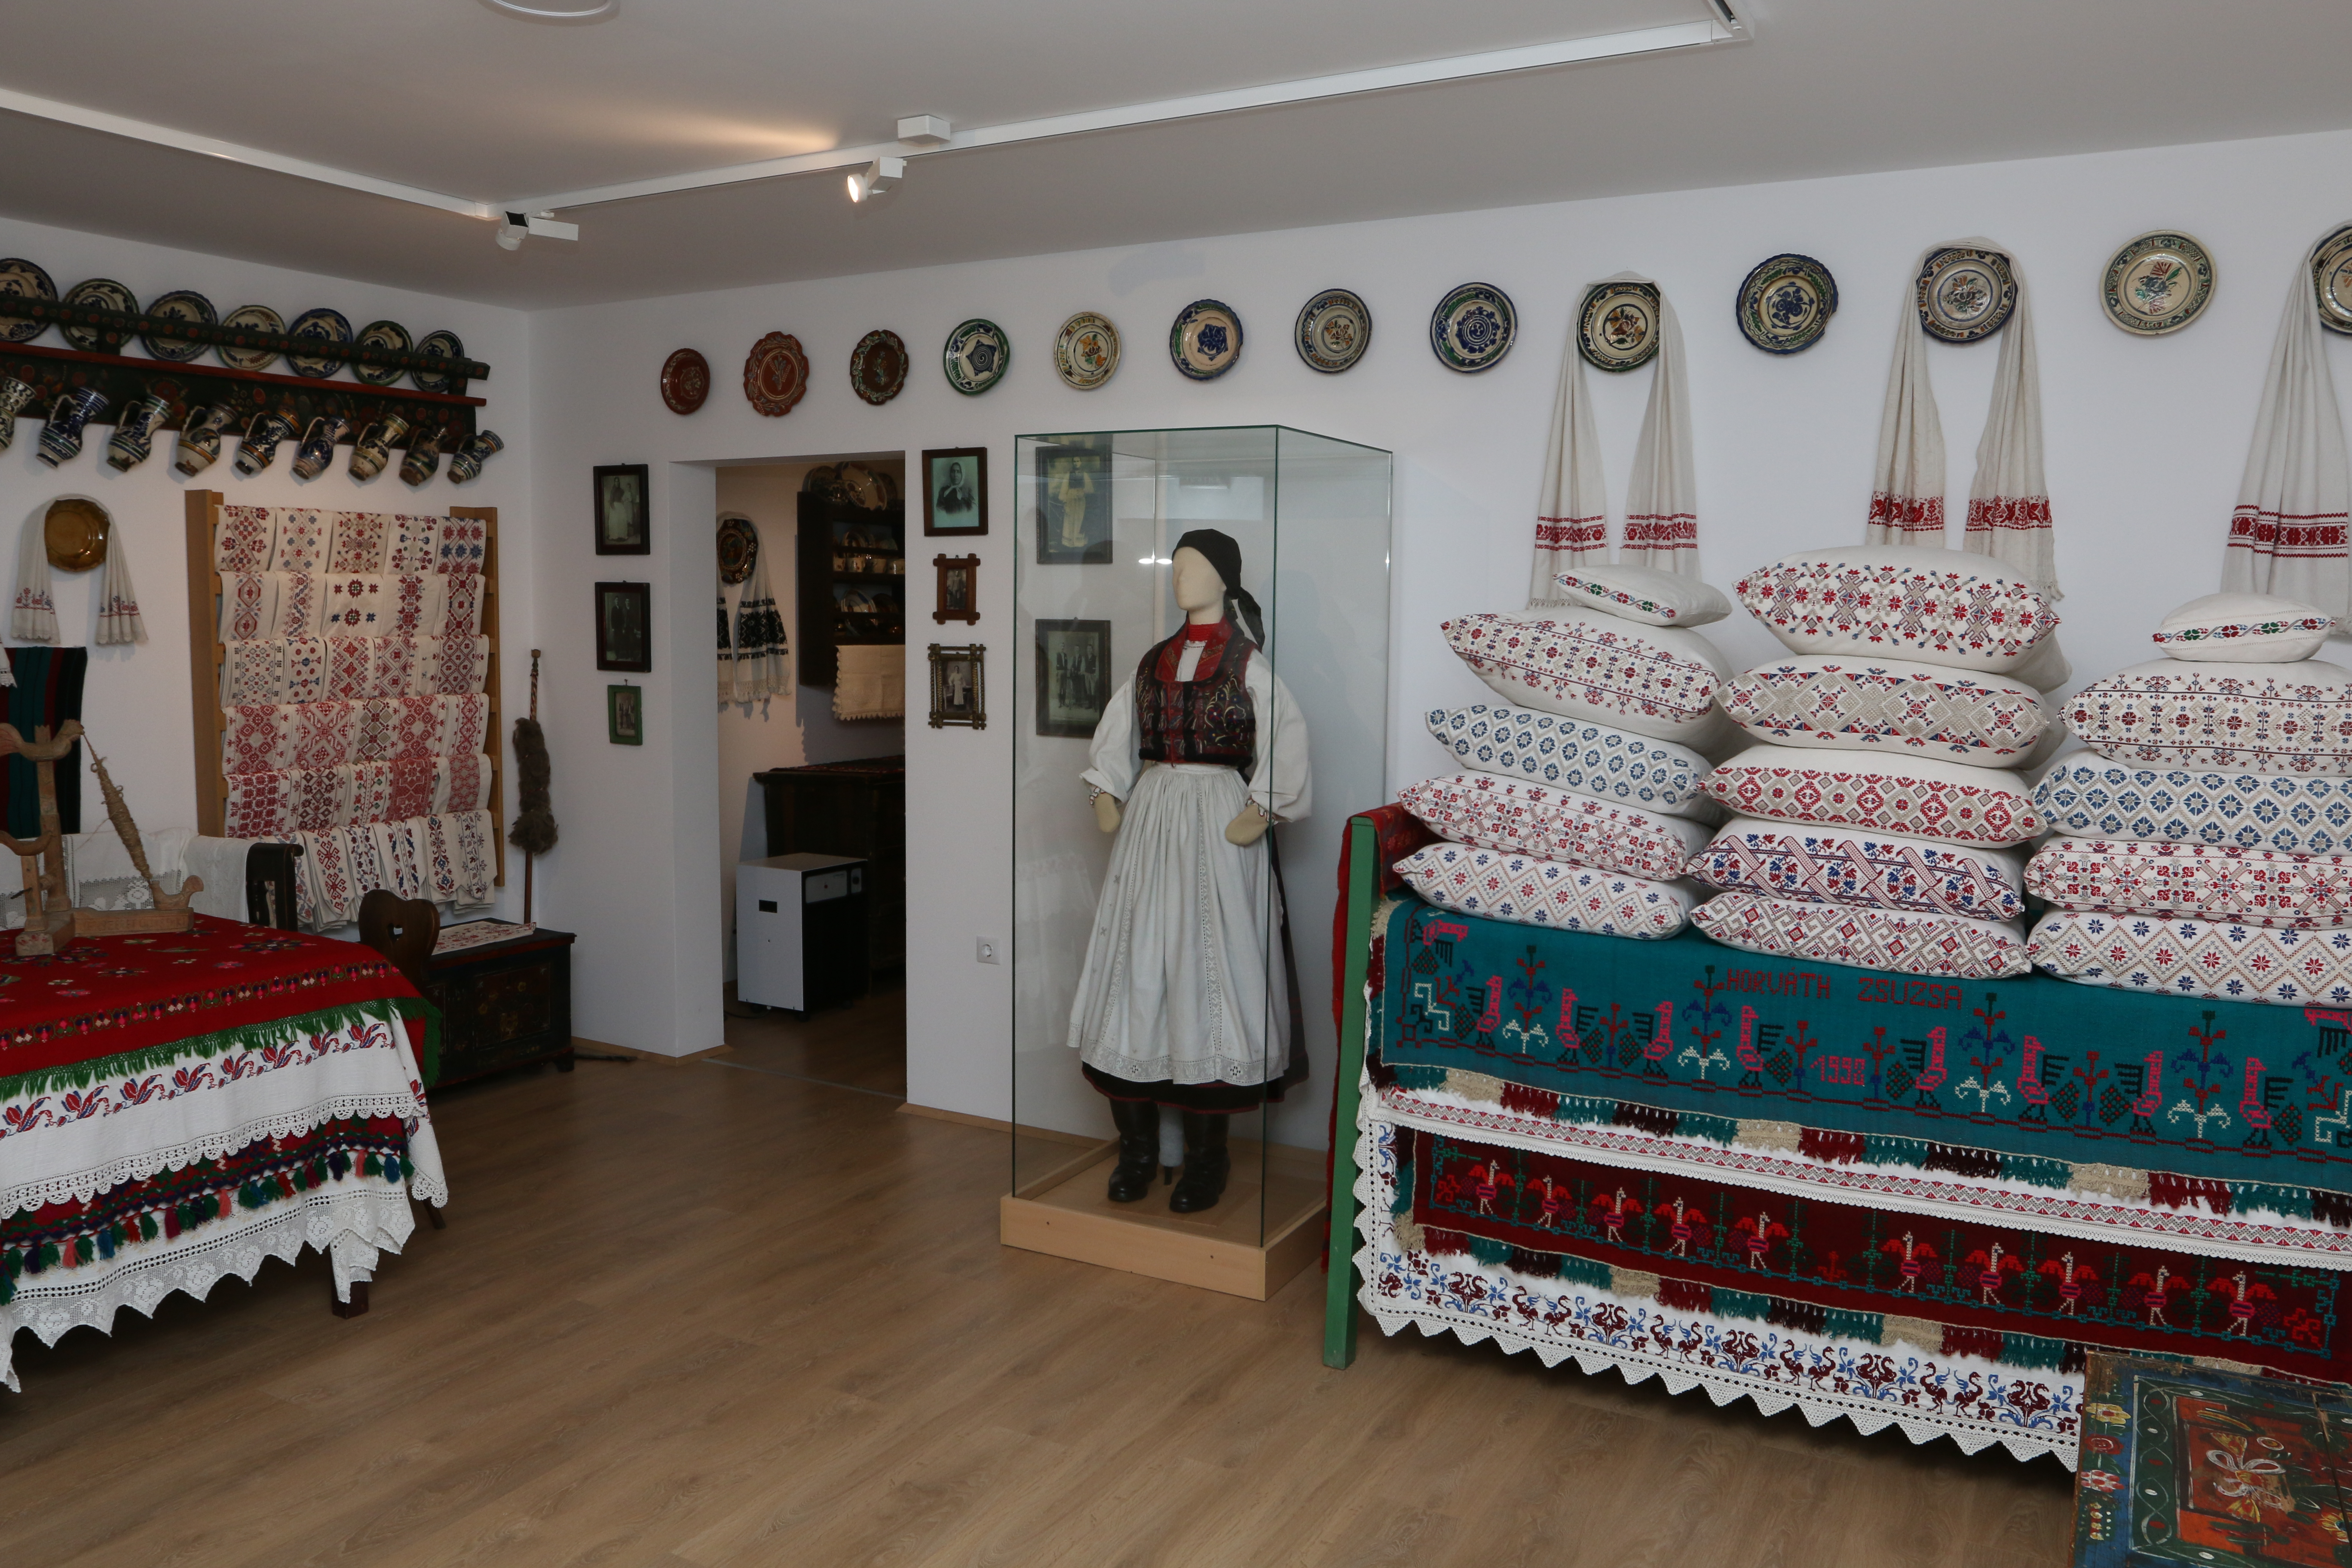 """The """"Clean Room"""" of Răscruci village at Zoltán Kallós Museum and Ethnographic Centre"""